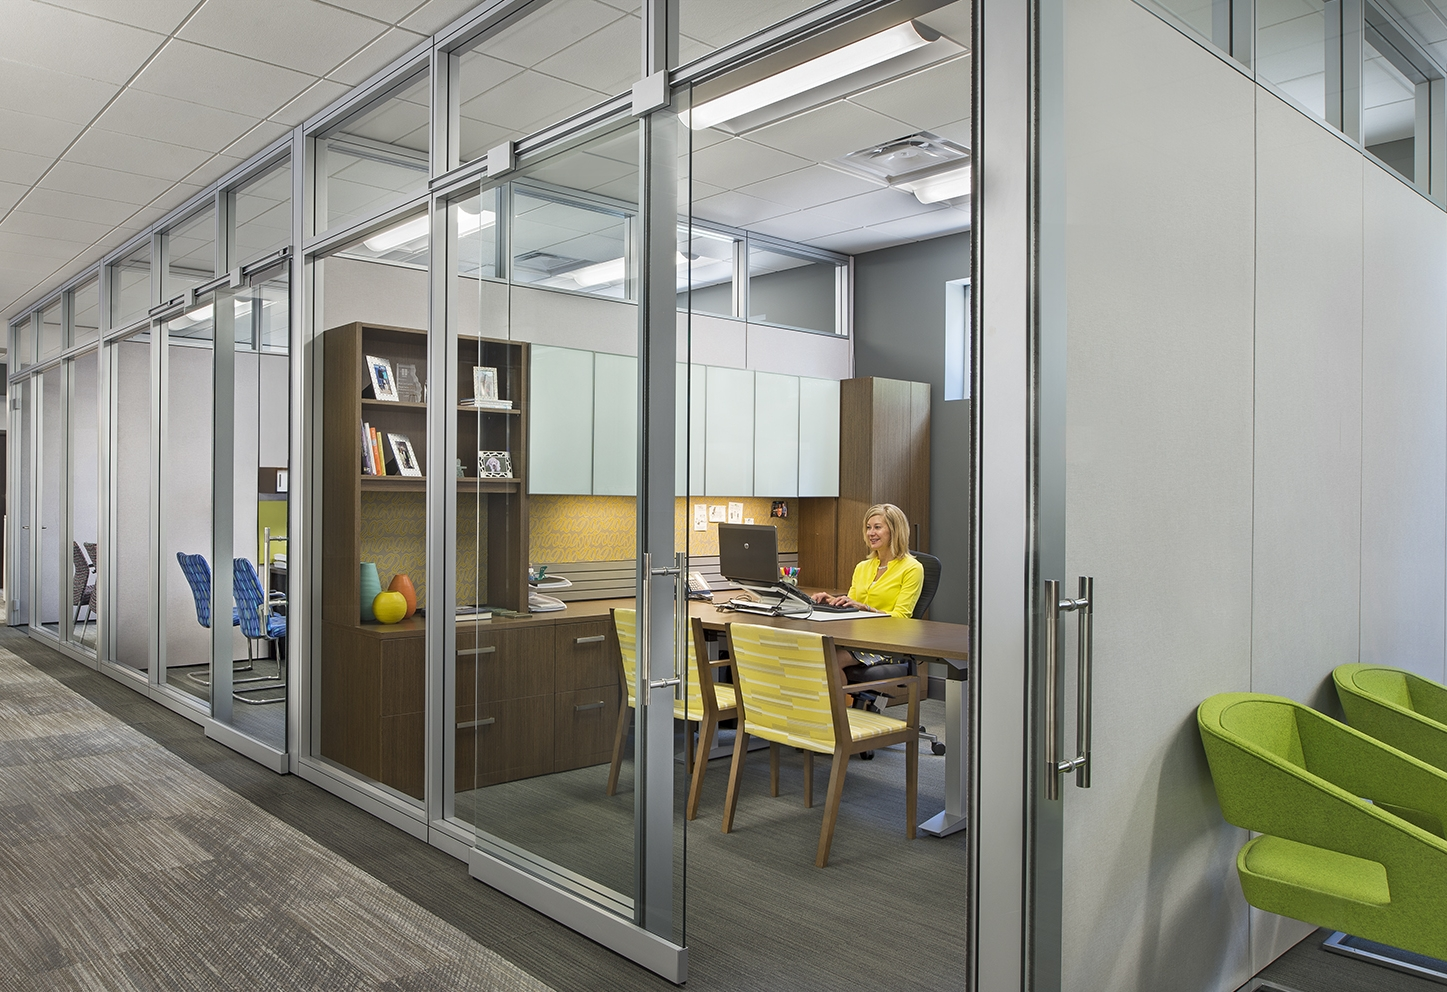 Architectural Solutions - Movable walls provide a customizable space with all the benefits of traditional walls. They are 100% reconfigurable and can be easily change with a growing business.